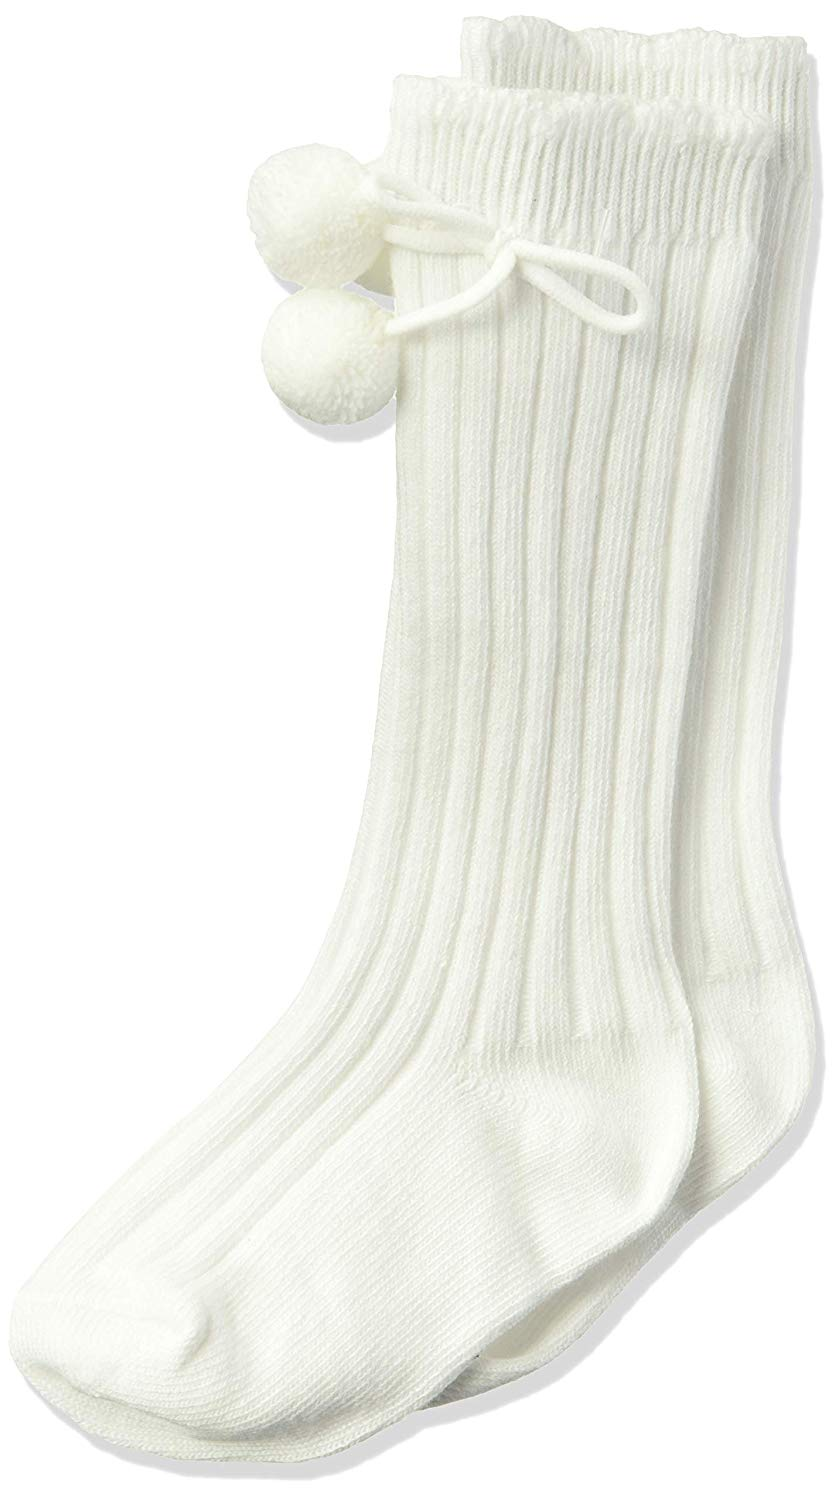 Jefferies Socks White Rib Pom Pom Knee High